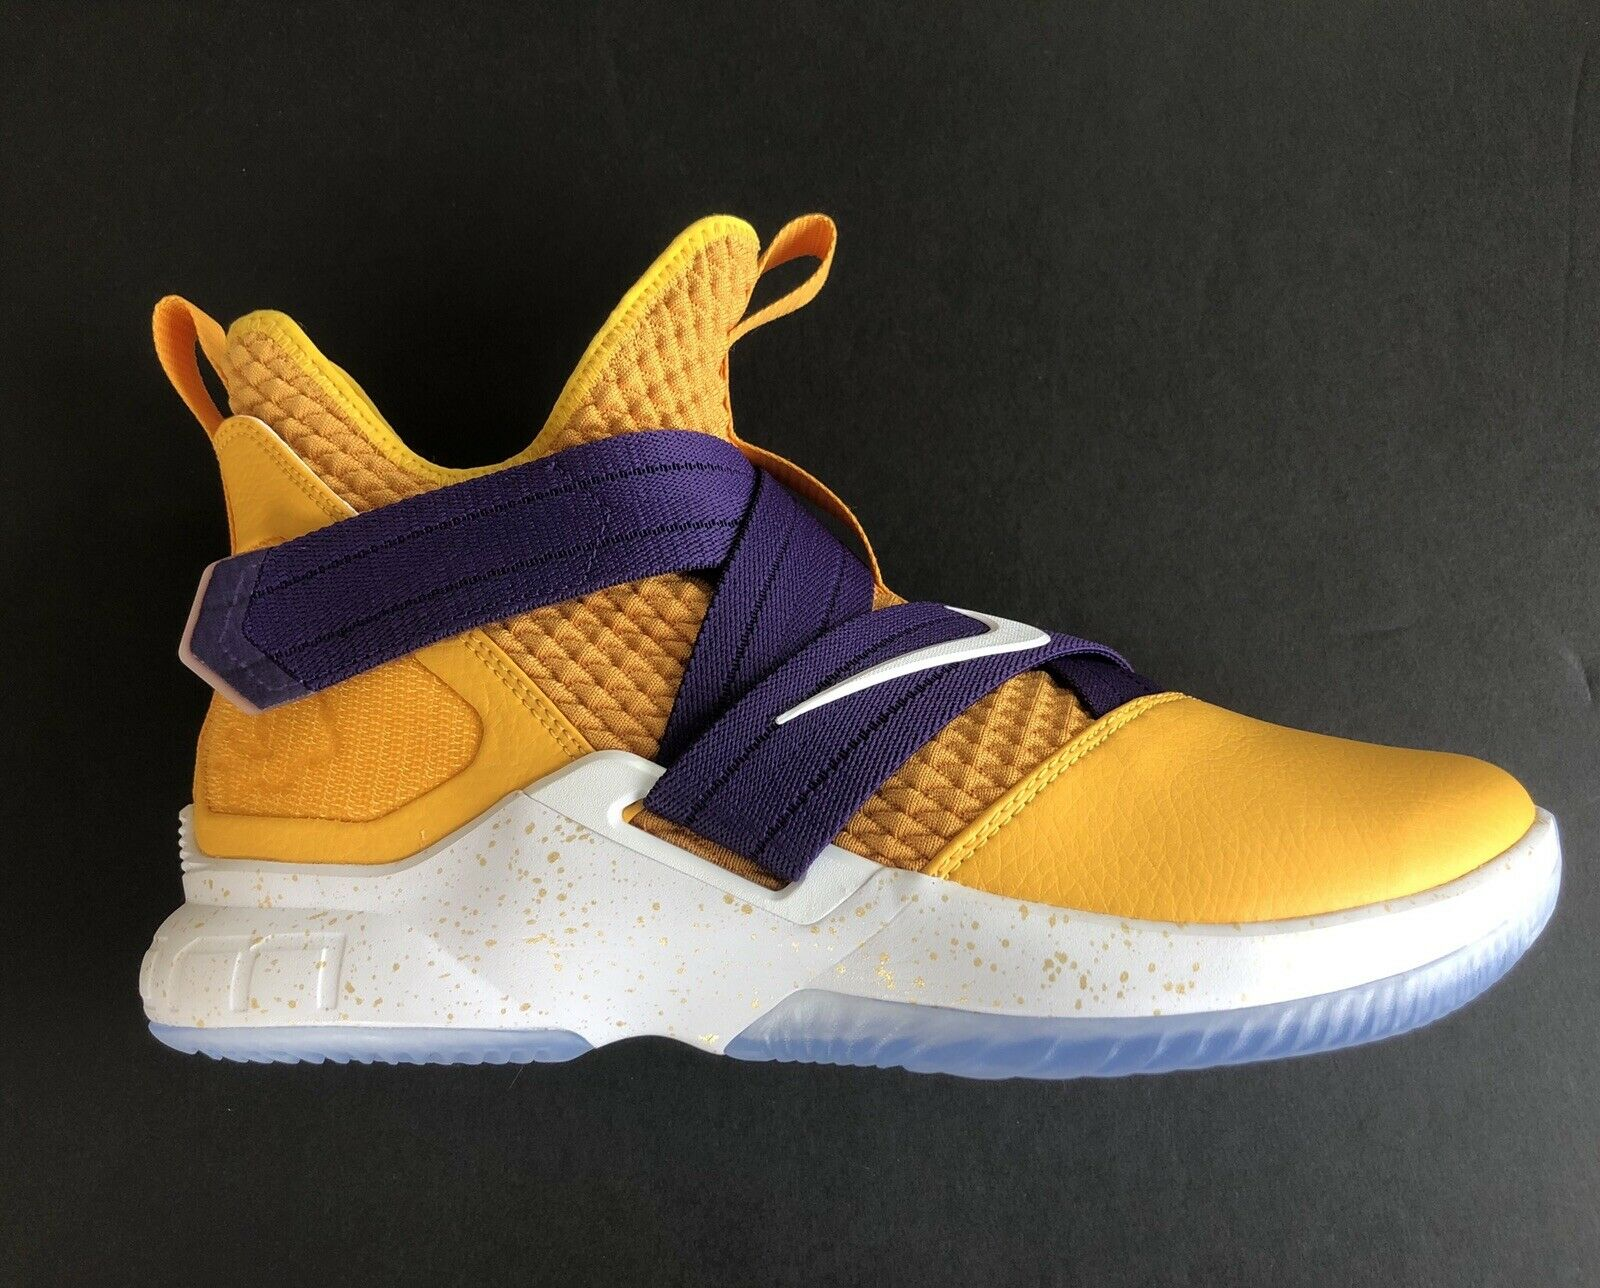 Nike LeBron iD Soldier XII Lakers Purple gold Speckle AR6333-991 In Hand Size 10